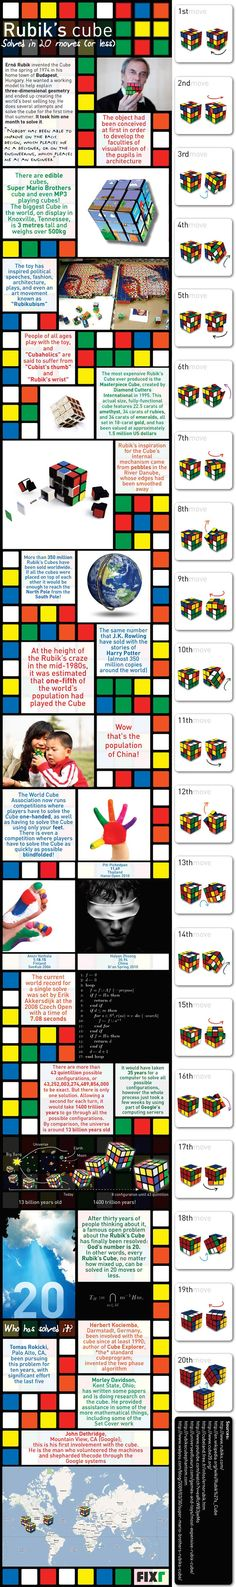 All about the Rubik's Cube...